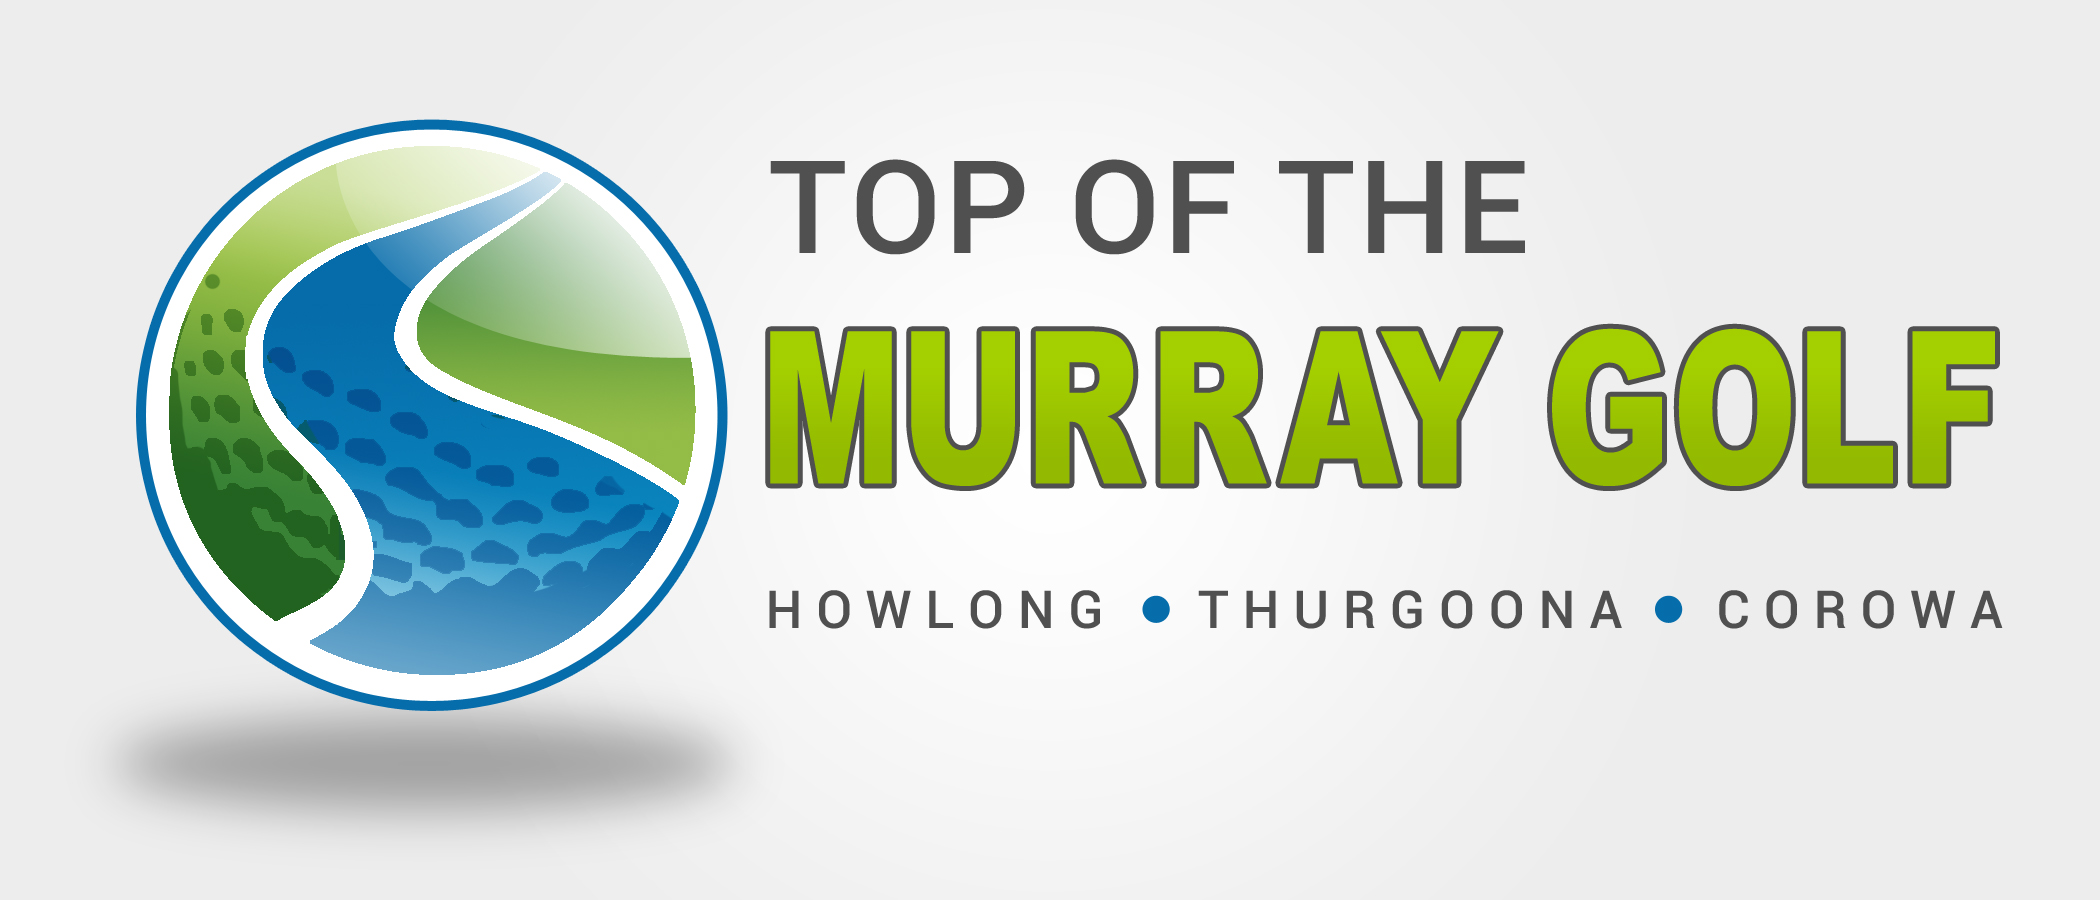 Top of the Murray Golf